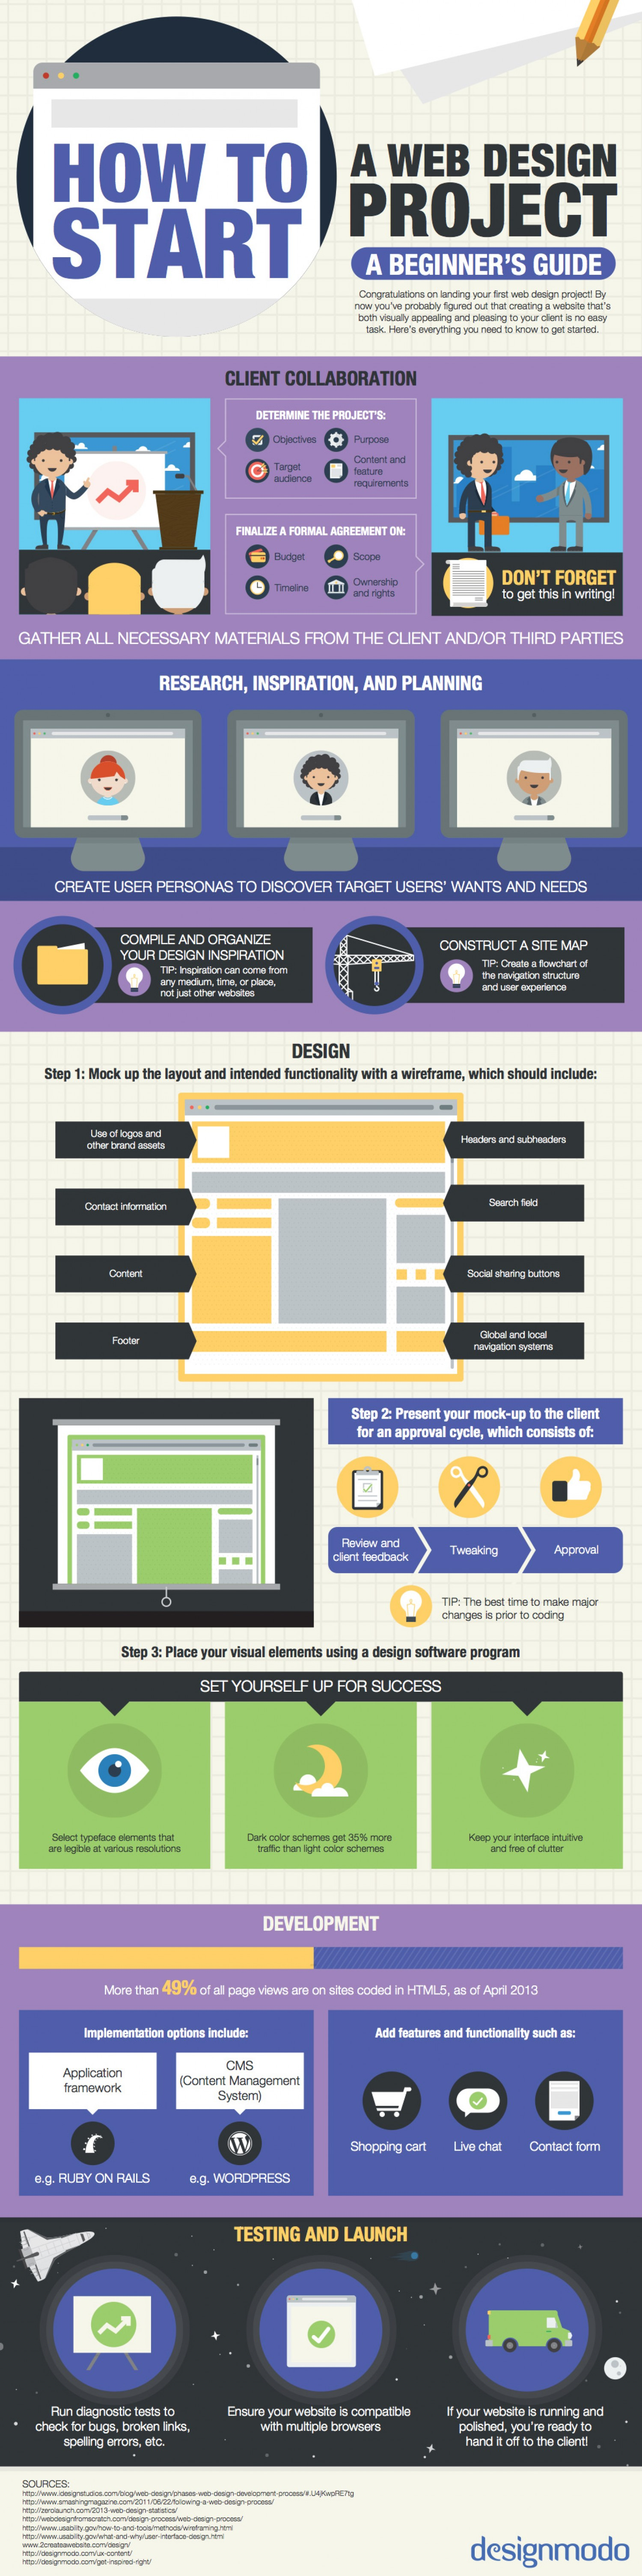 how-to-start-a-web-design-project_53abddb943ee9_w1500